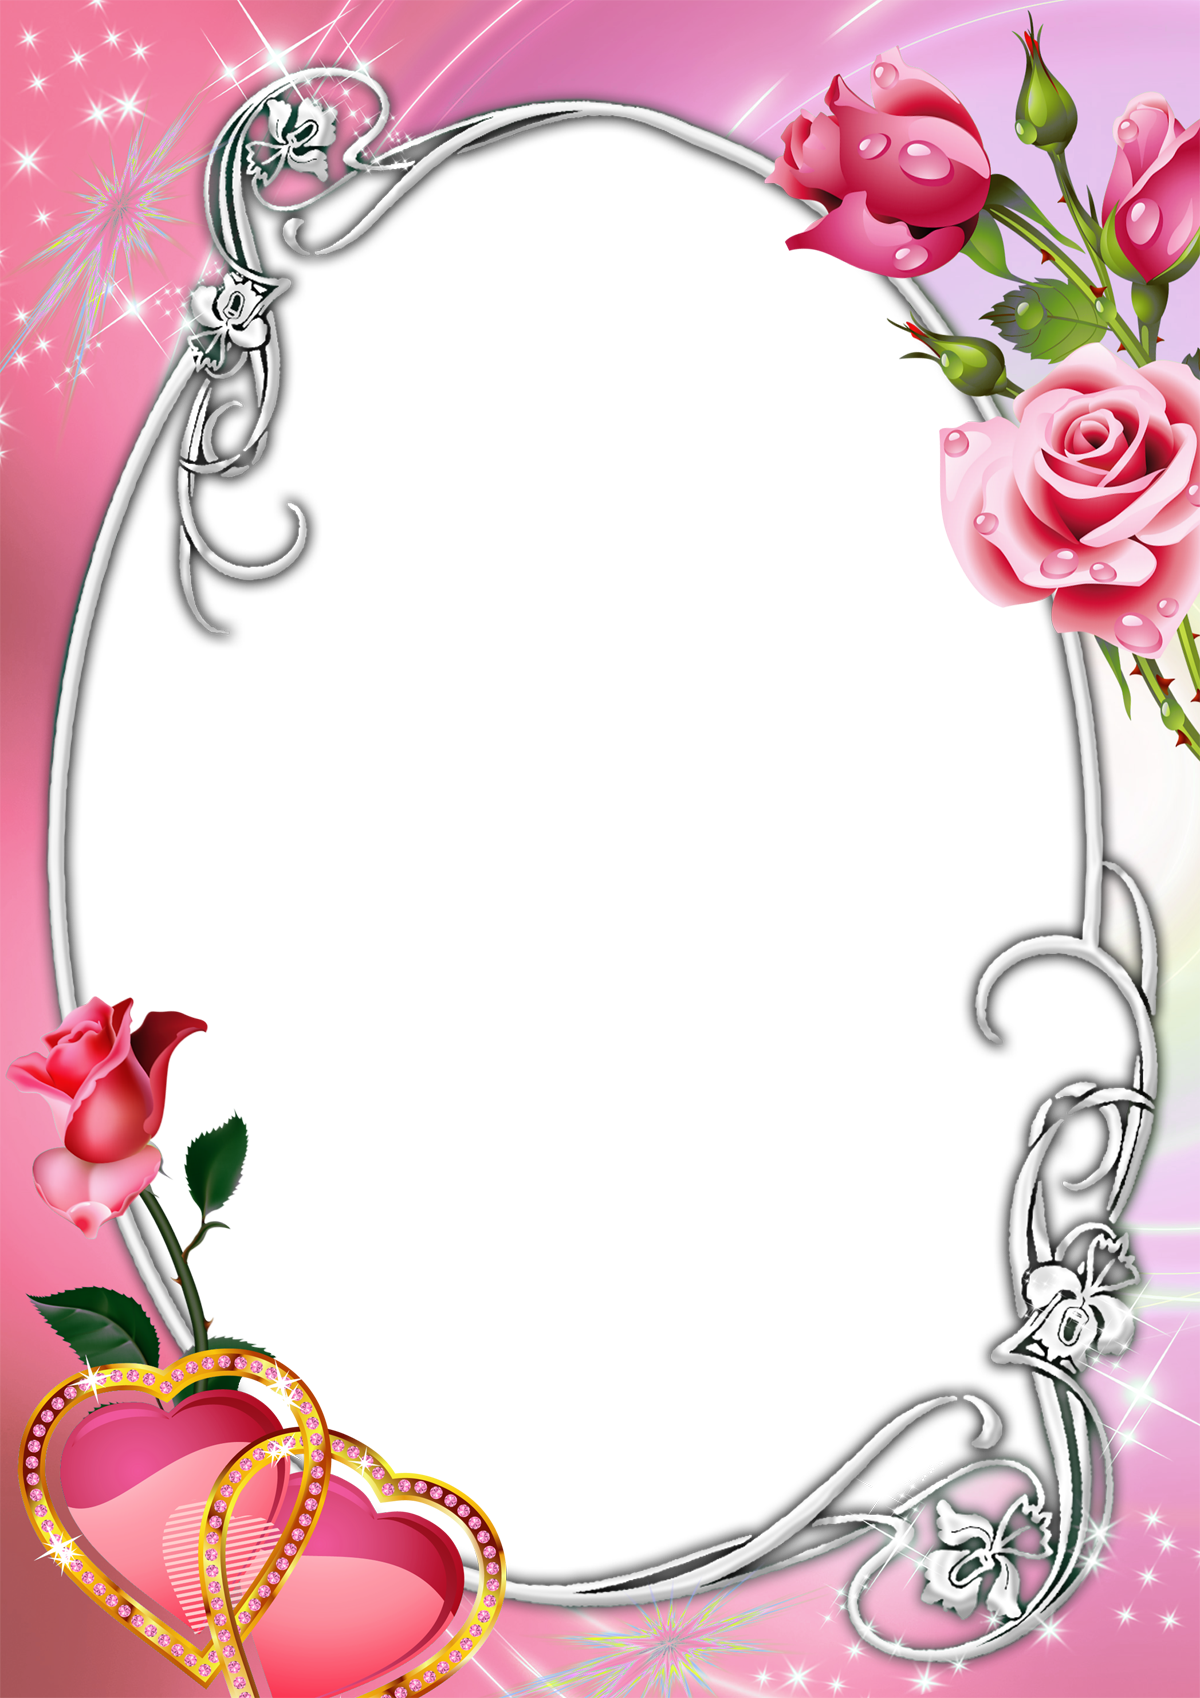 Heart frame clipart png black and white stock Pink Transparent Frame with Roses and Hearts | Photo Frames ... png black and white stock